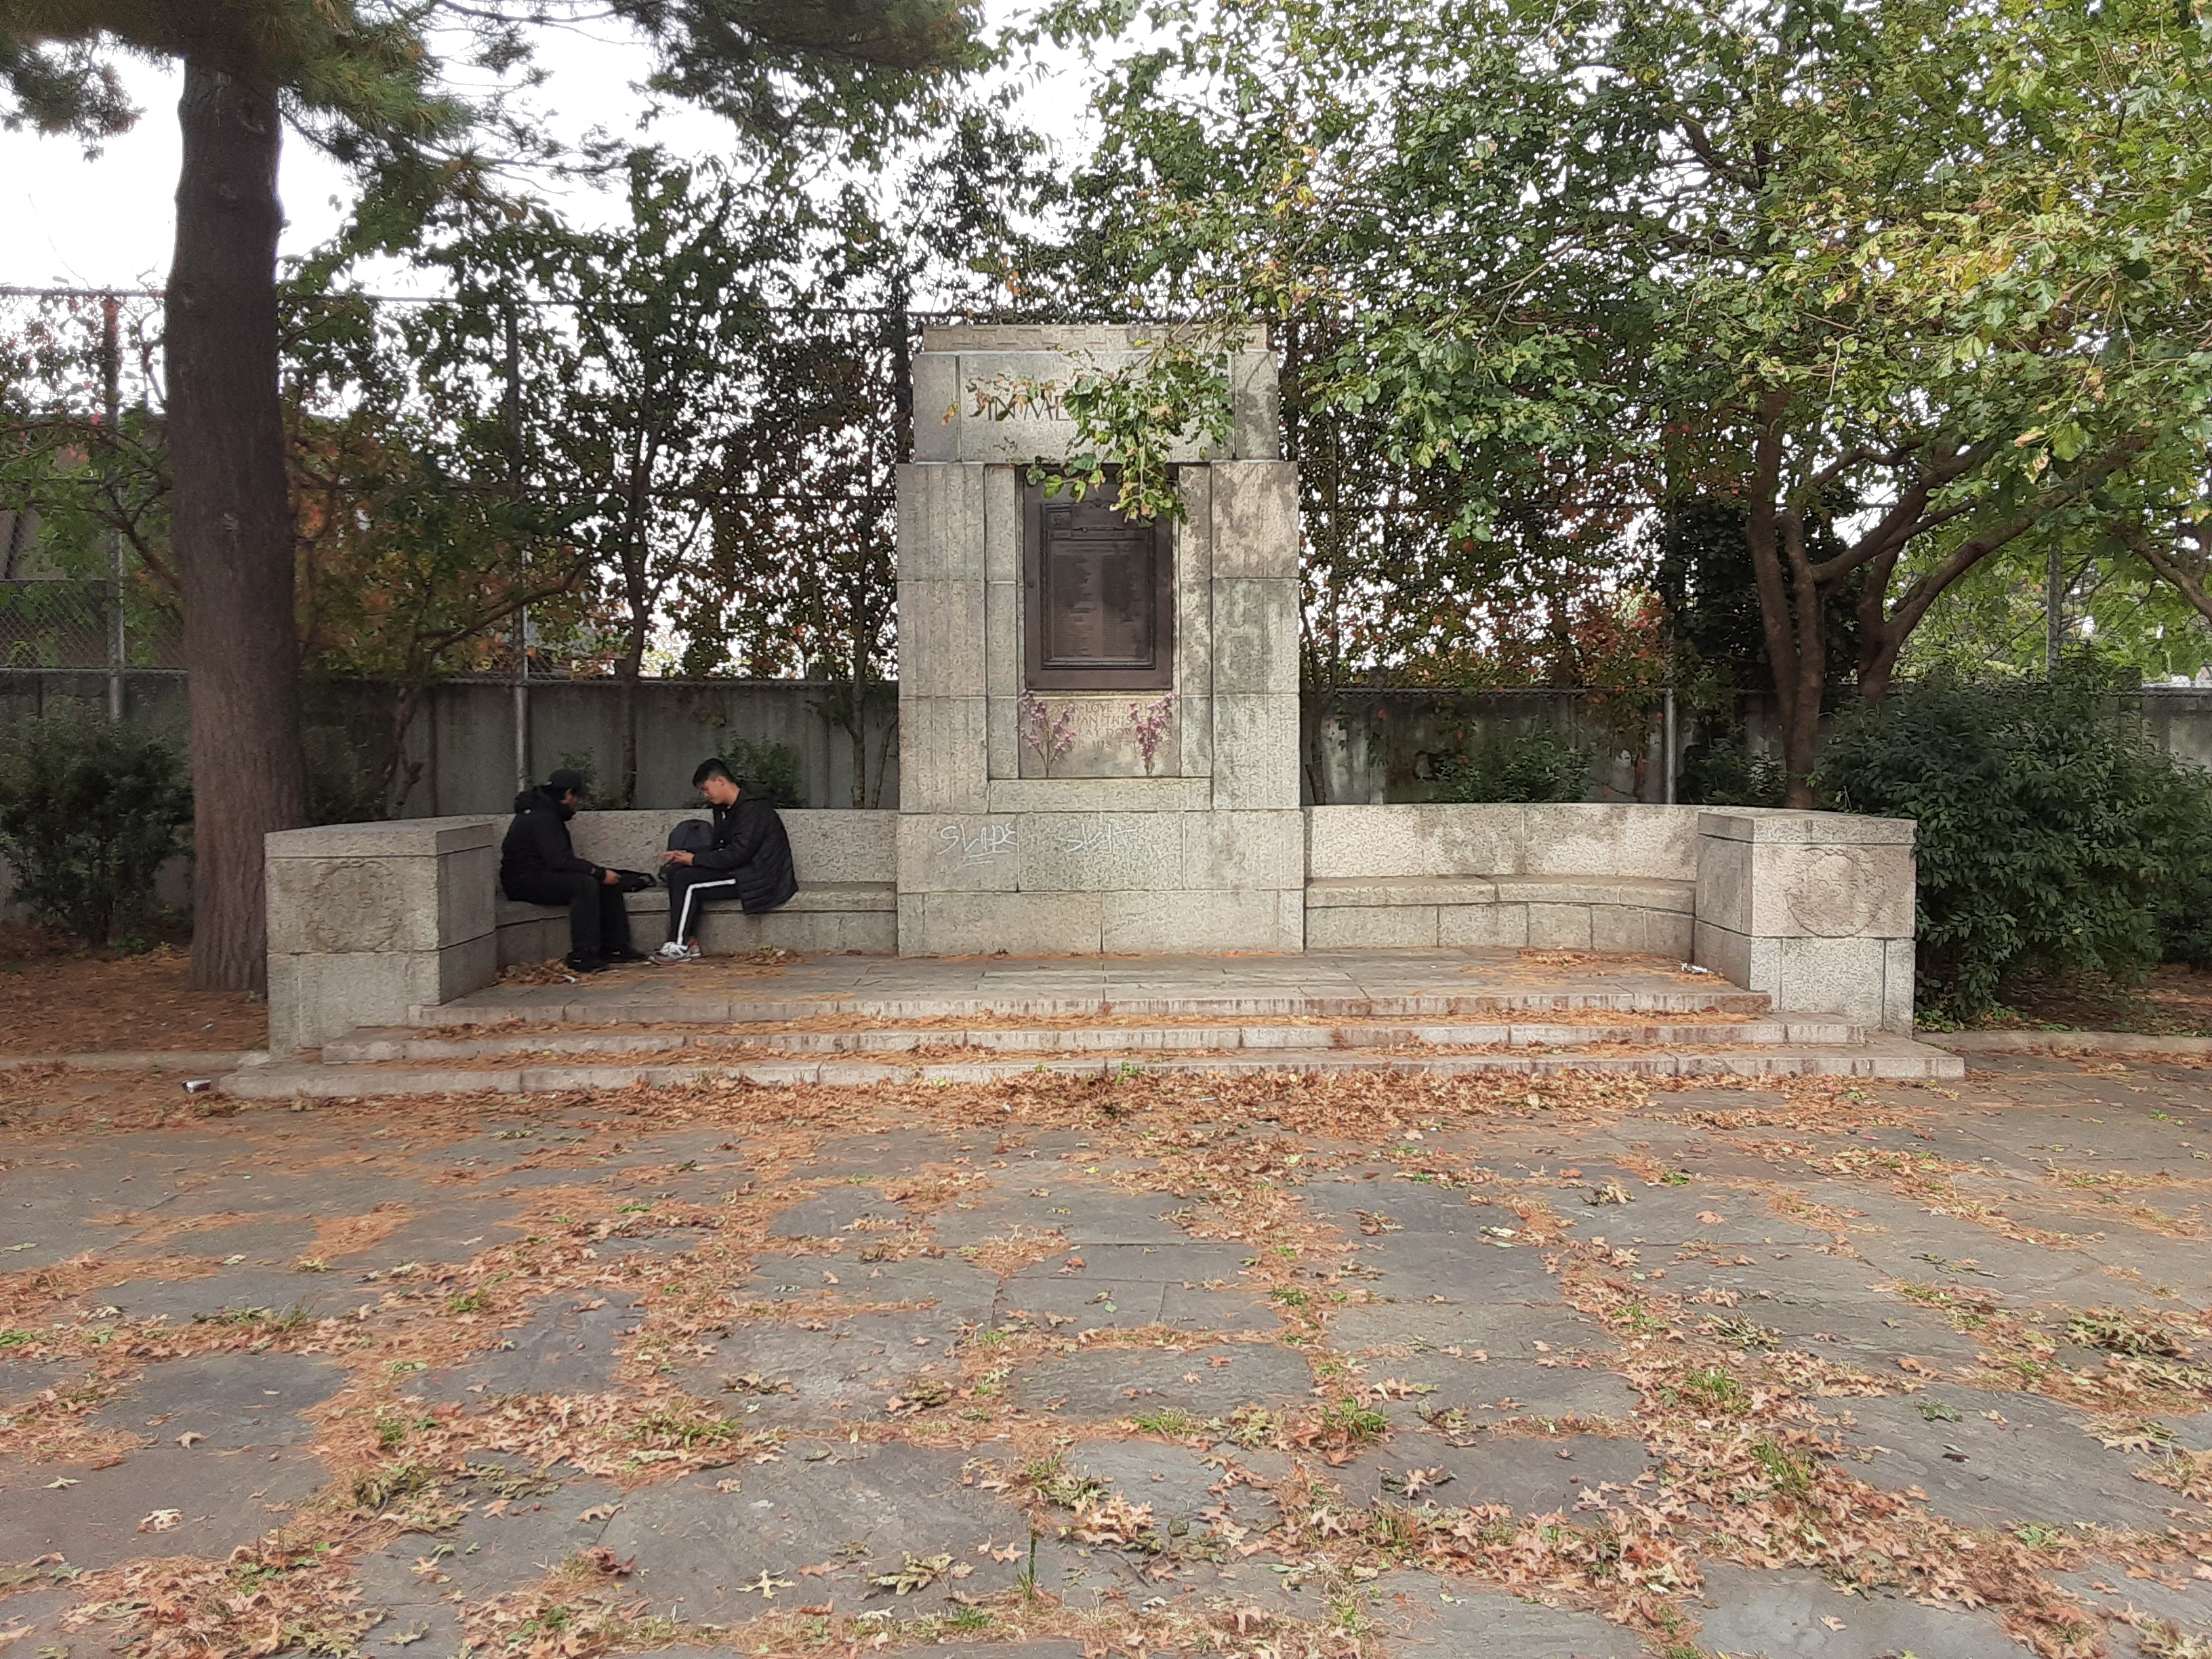 The Memorial with sitting people for scale.